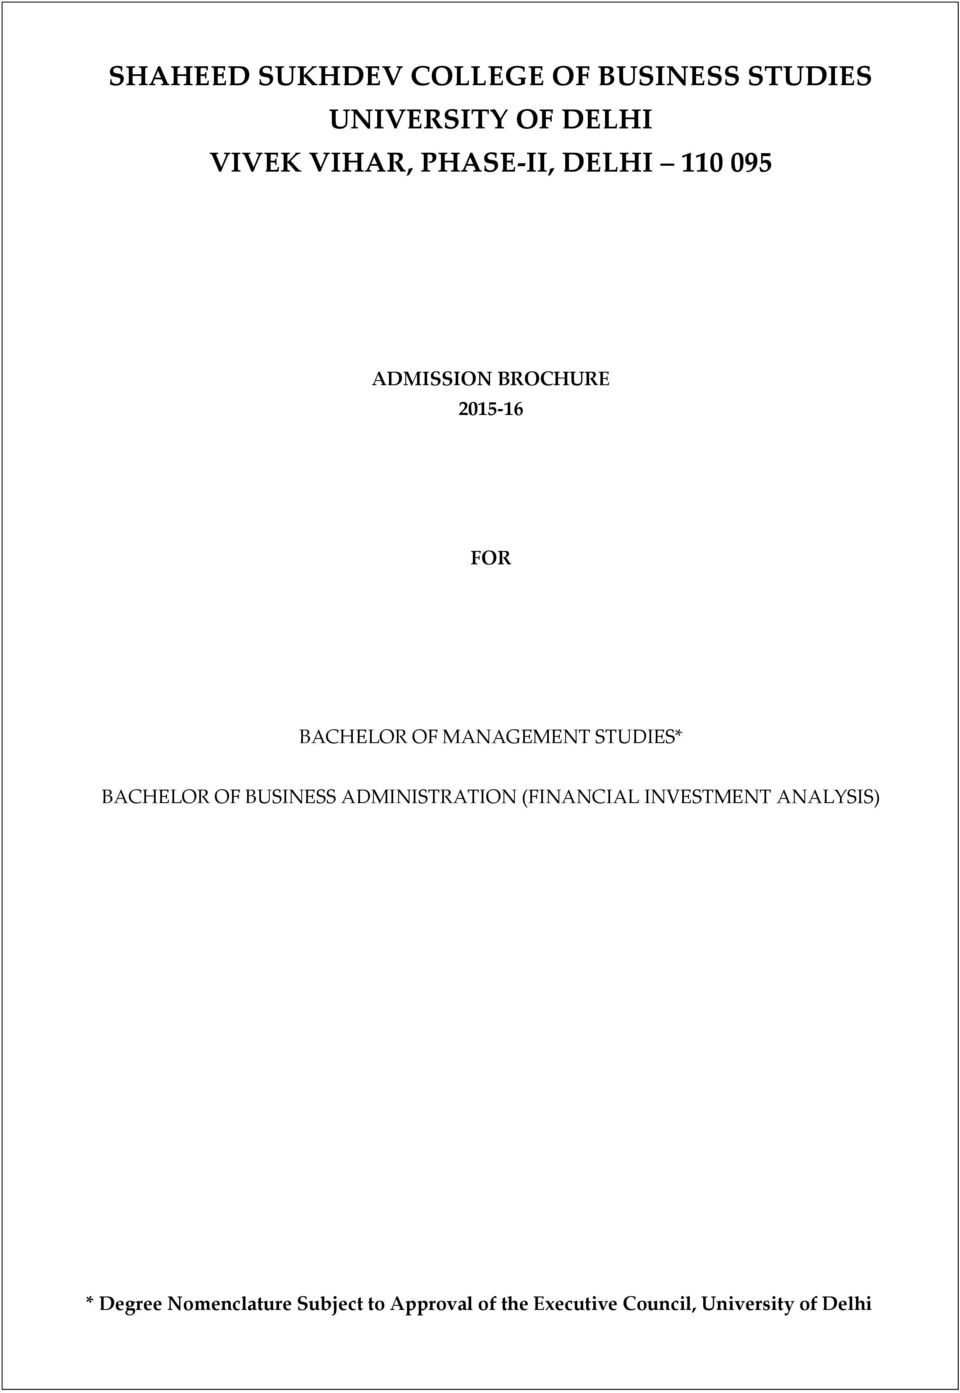 STUDIES* BACHELOR OF BUSINESS ADMINISTRATION (FINANCIAL INVESTMENT ANALYSIS) *